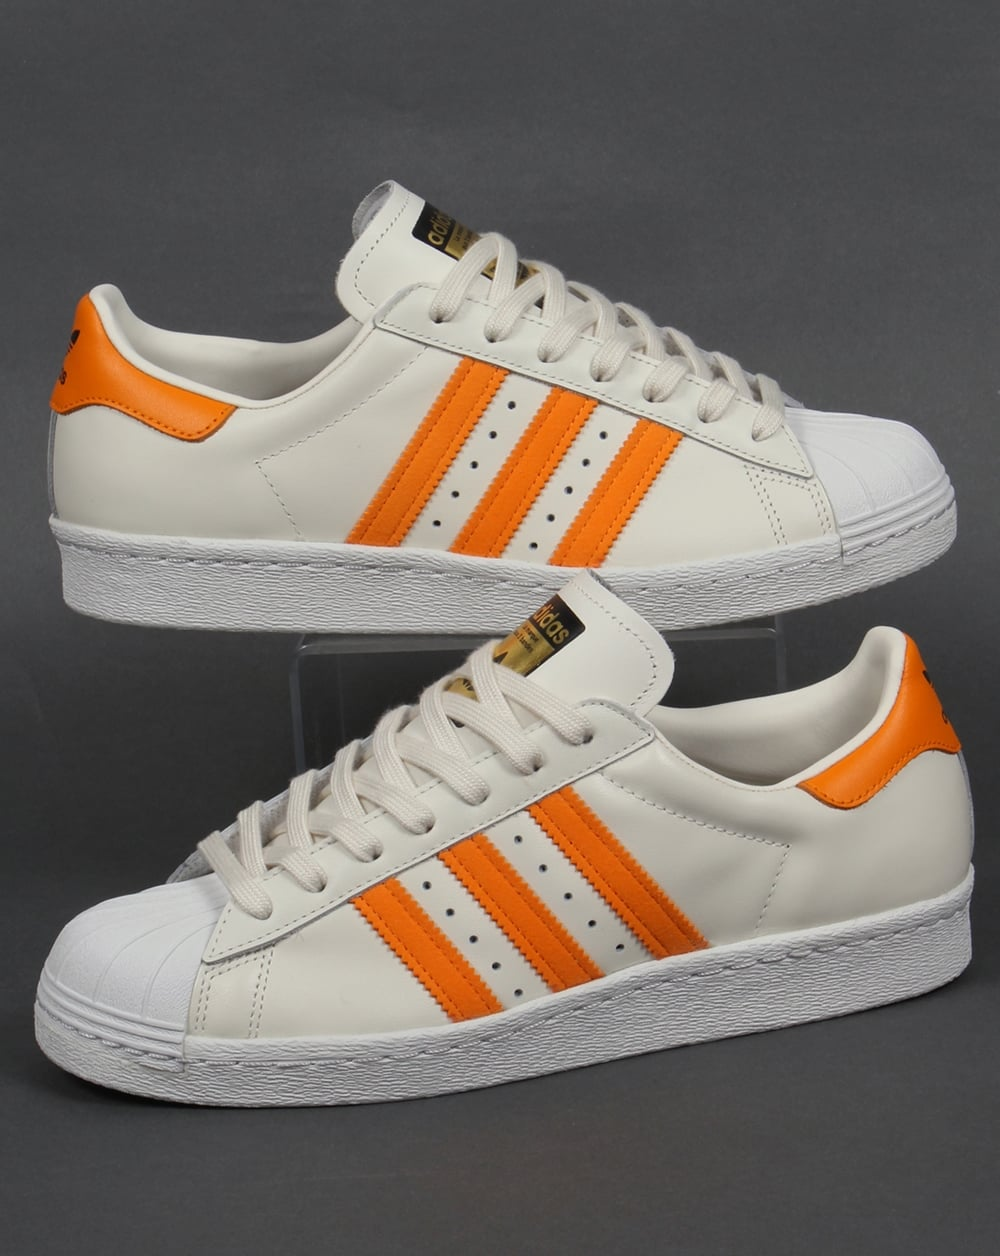 best loved d14f7 435e9 adidas Trainers Adidas Superstar 80s Trainers Off White Orange